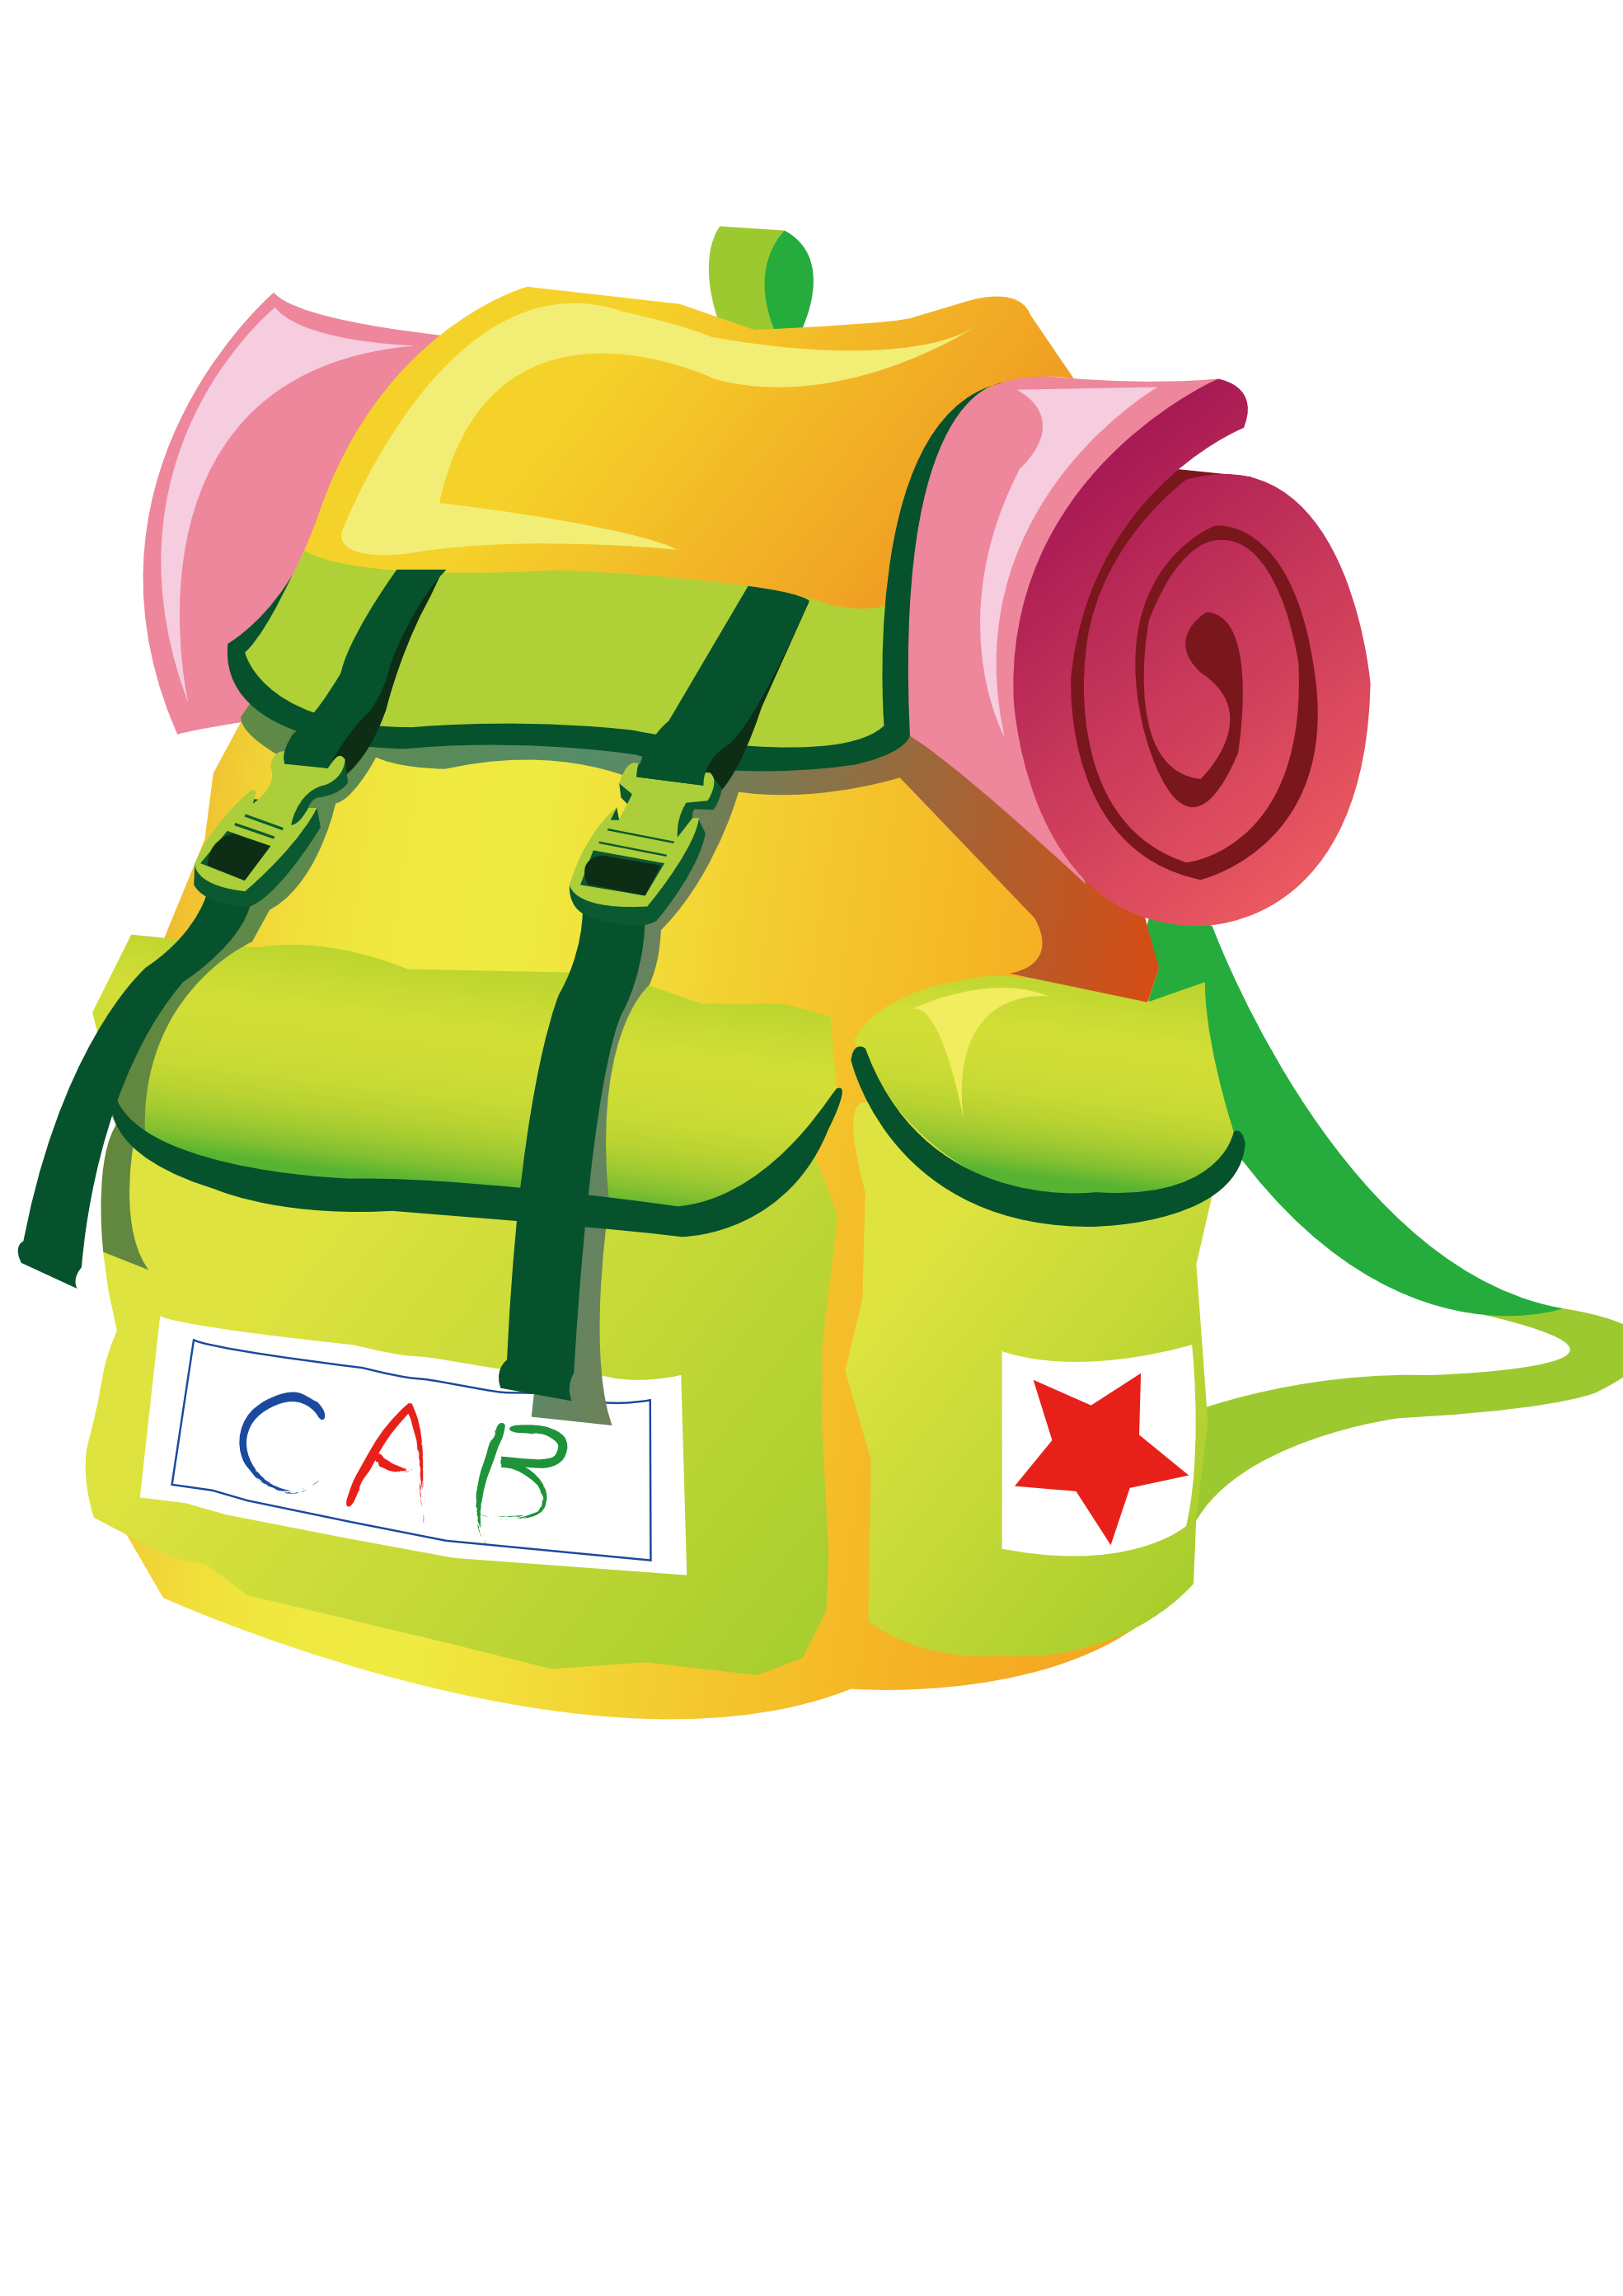 1969x2785 Clip Art Travel Backpacks Svg